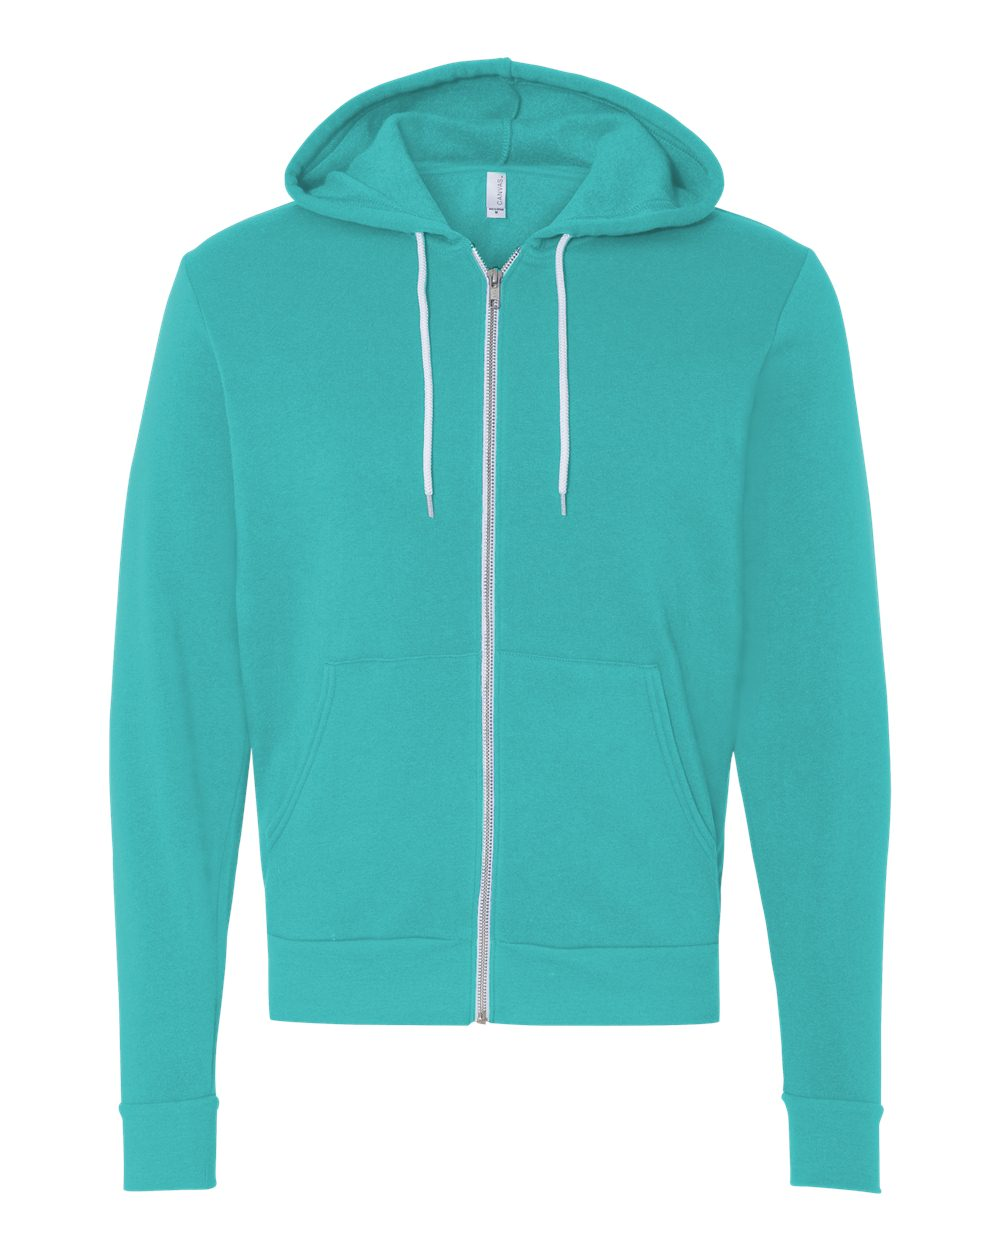 click to view Teal